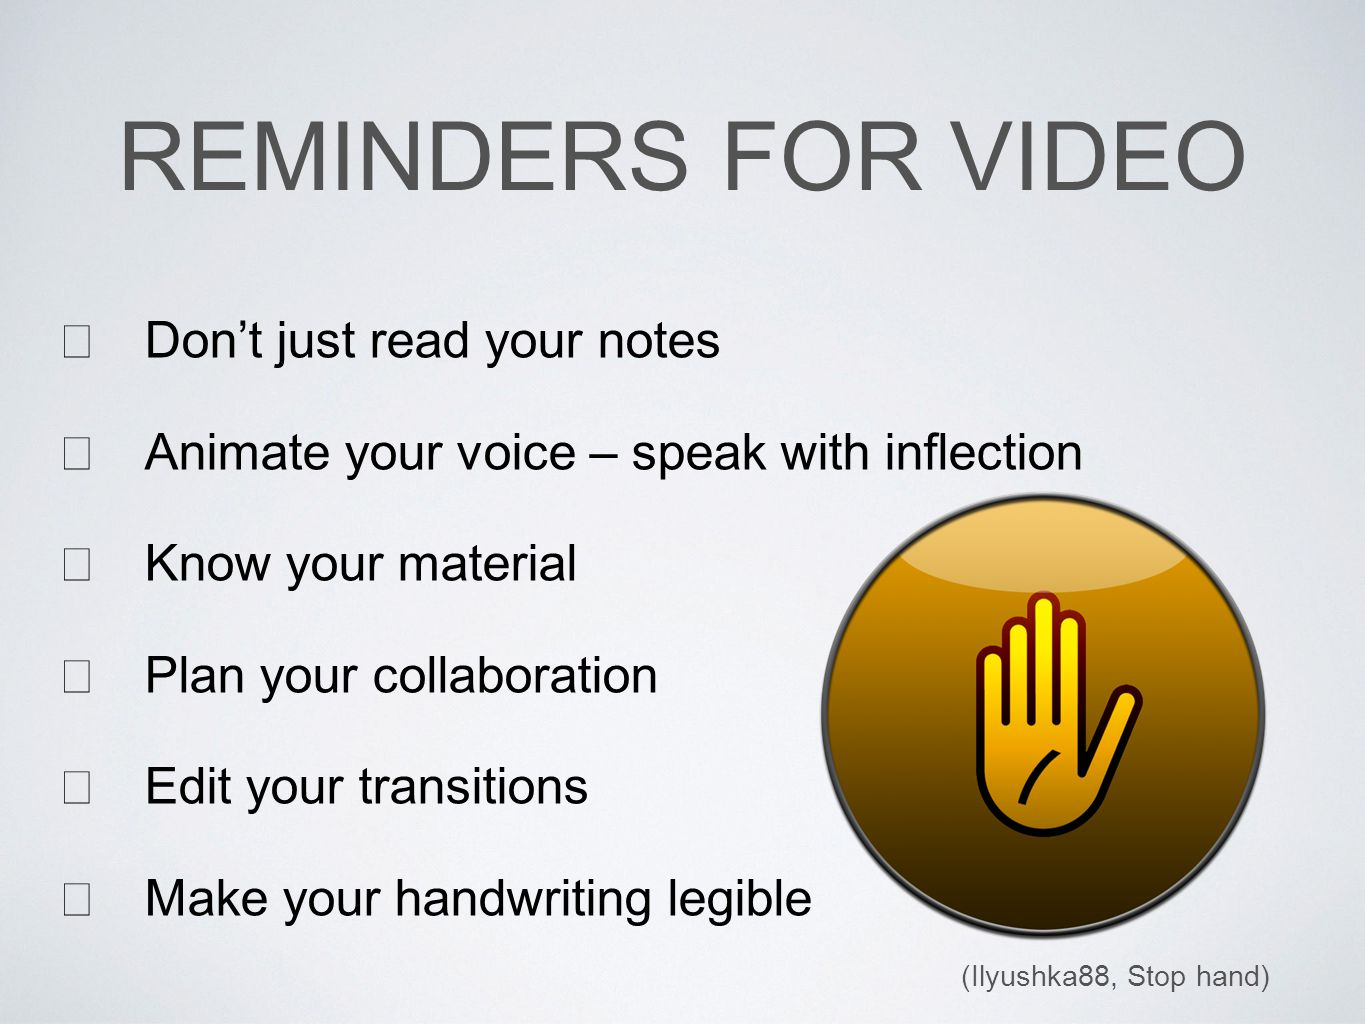  Don't just read your notes  Animate your voice – speak with inflection  Know your material  Plan your collaboration  Edit your transitions  Make your handwriting legible REMINDERS FOR VIDEO (Ilyushka88, Stop hand)